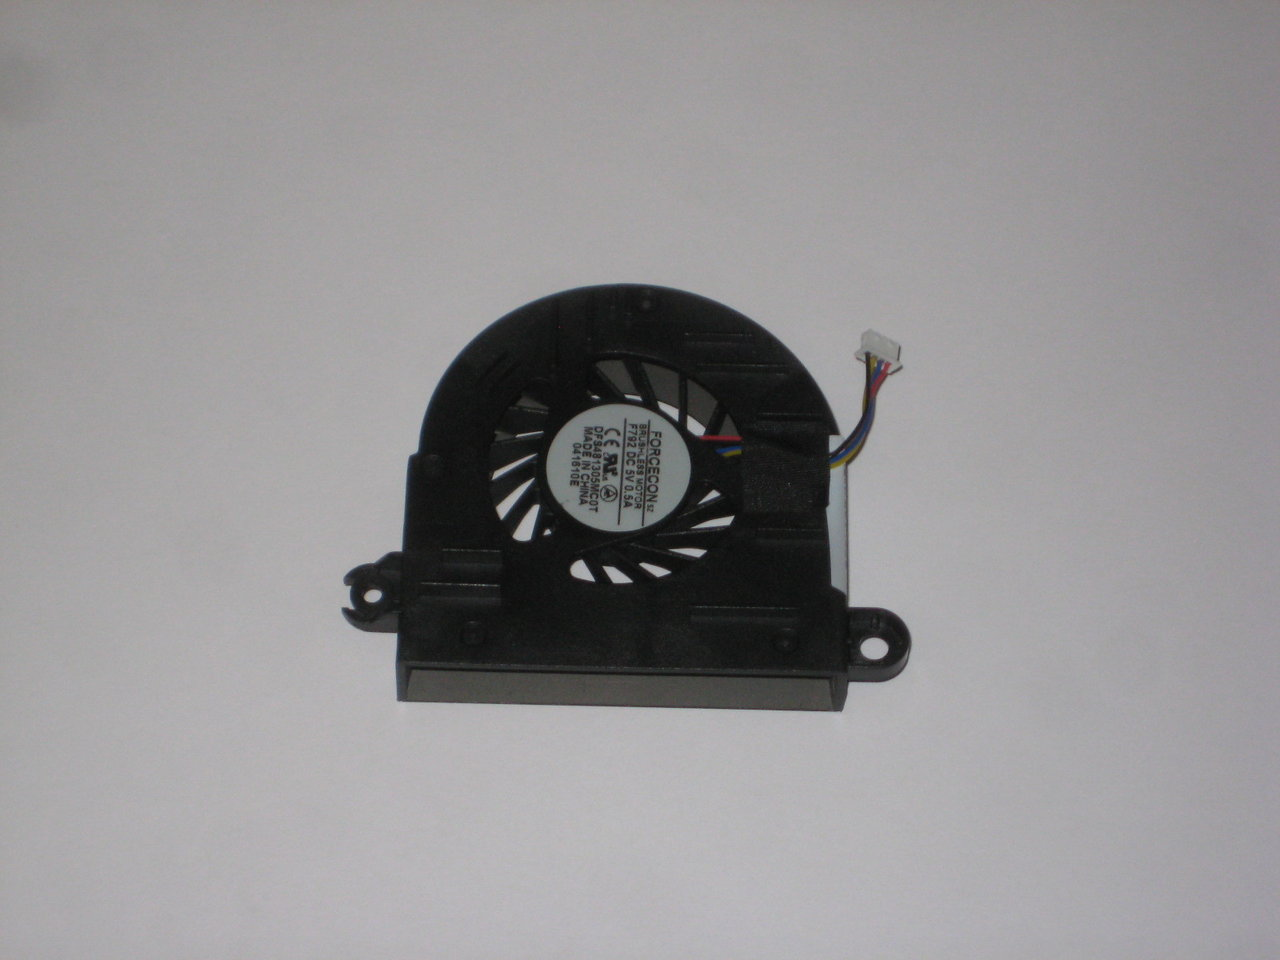 Forcecon DFS481305MC0T F792 Cooling FAN for HP Elitebook